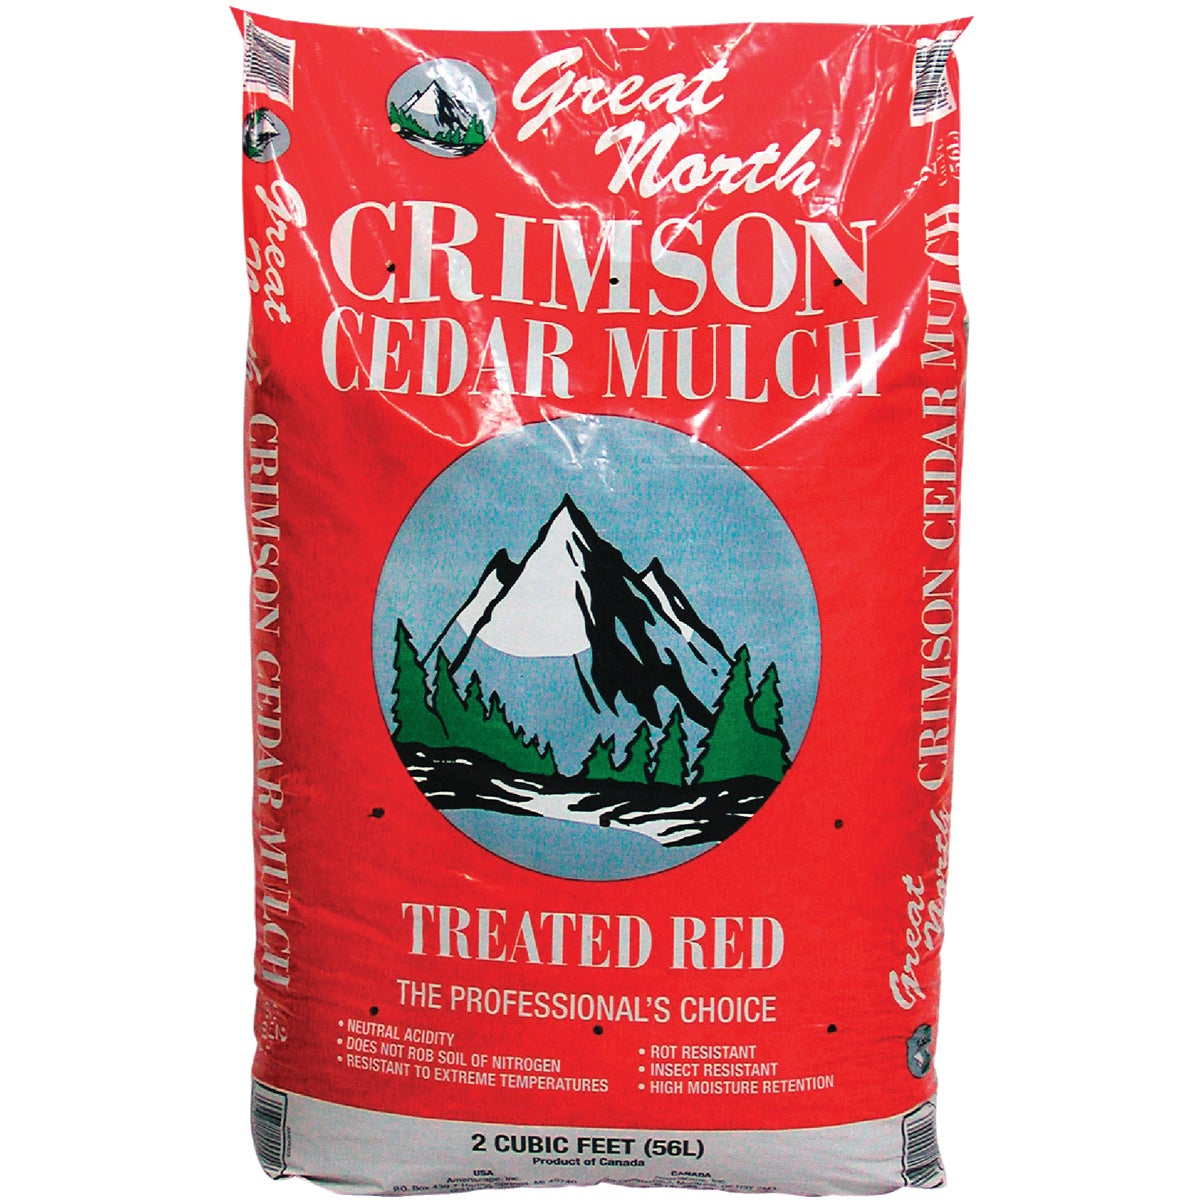 2CU FT RED CEDAR MULCH - 55554 by Ameriscape Inc